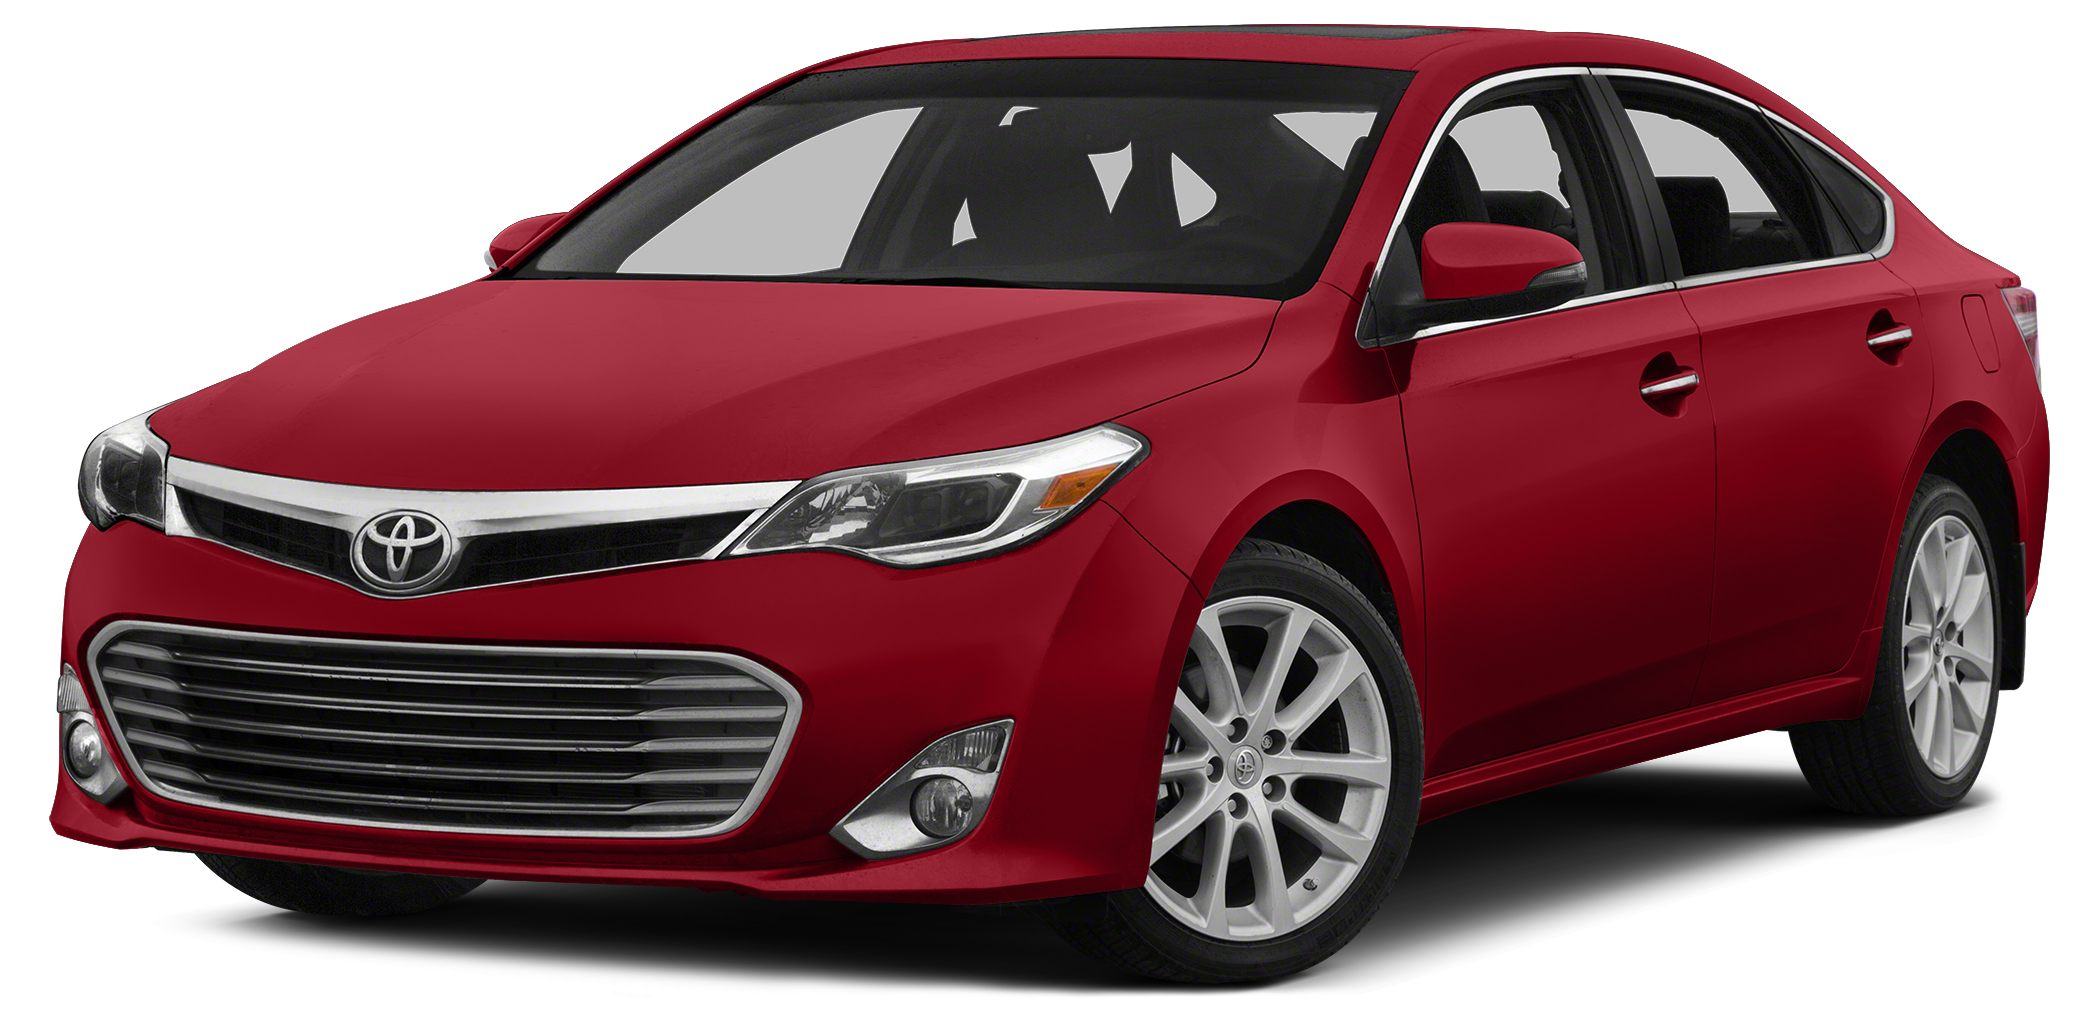 2013 Toyota Avalon Limited CARFAX 1-Owner Toyota Certified GREAT MILES 20183 Limited trim Sun